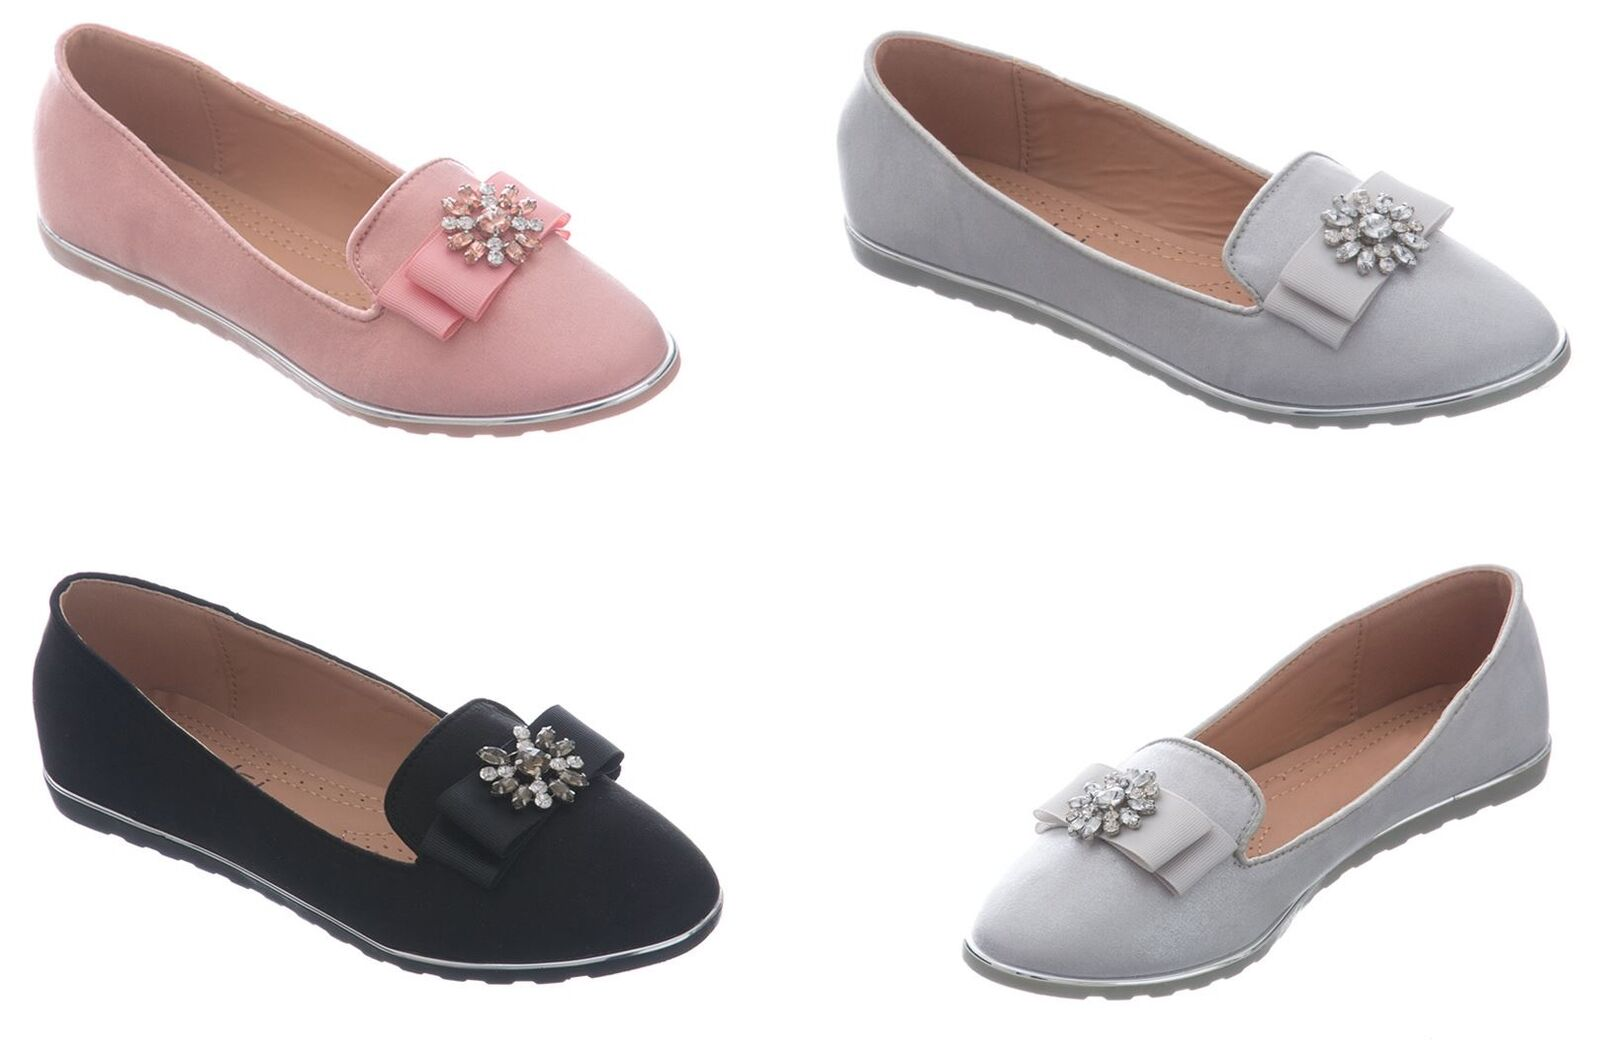 Shelikes Womens New Fashion Diamante Comfy Slip on Flip Flop Casual Shoes